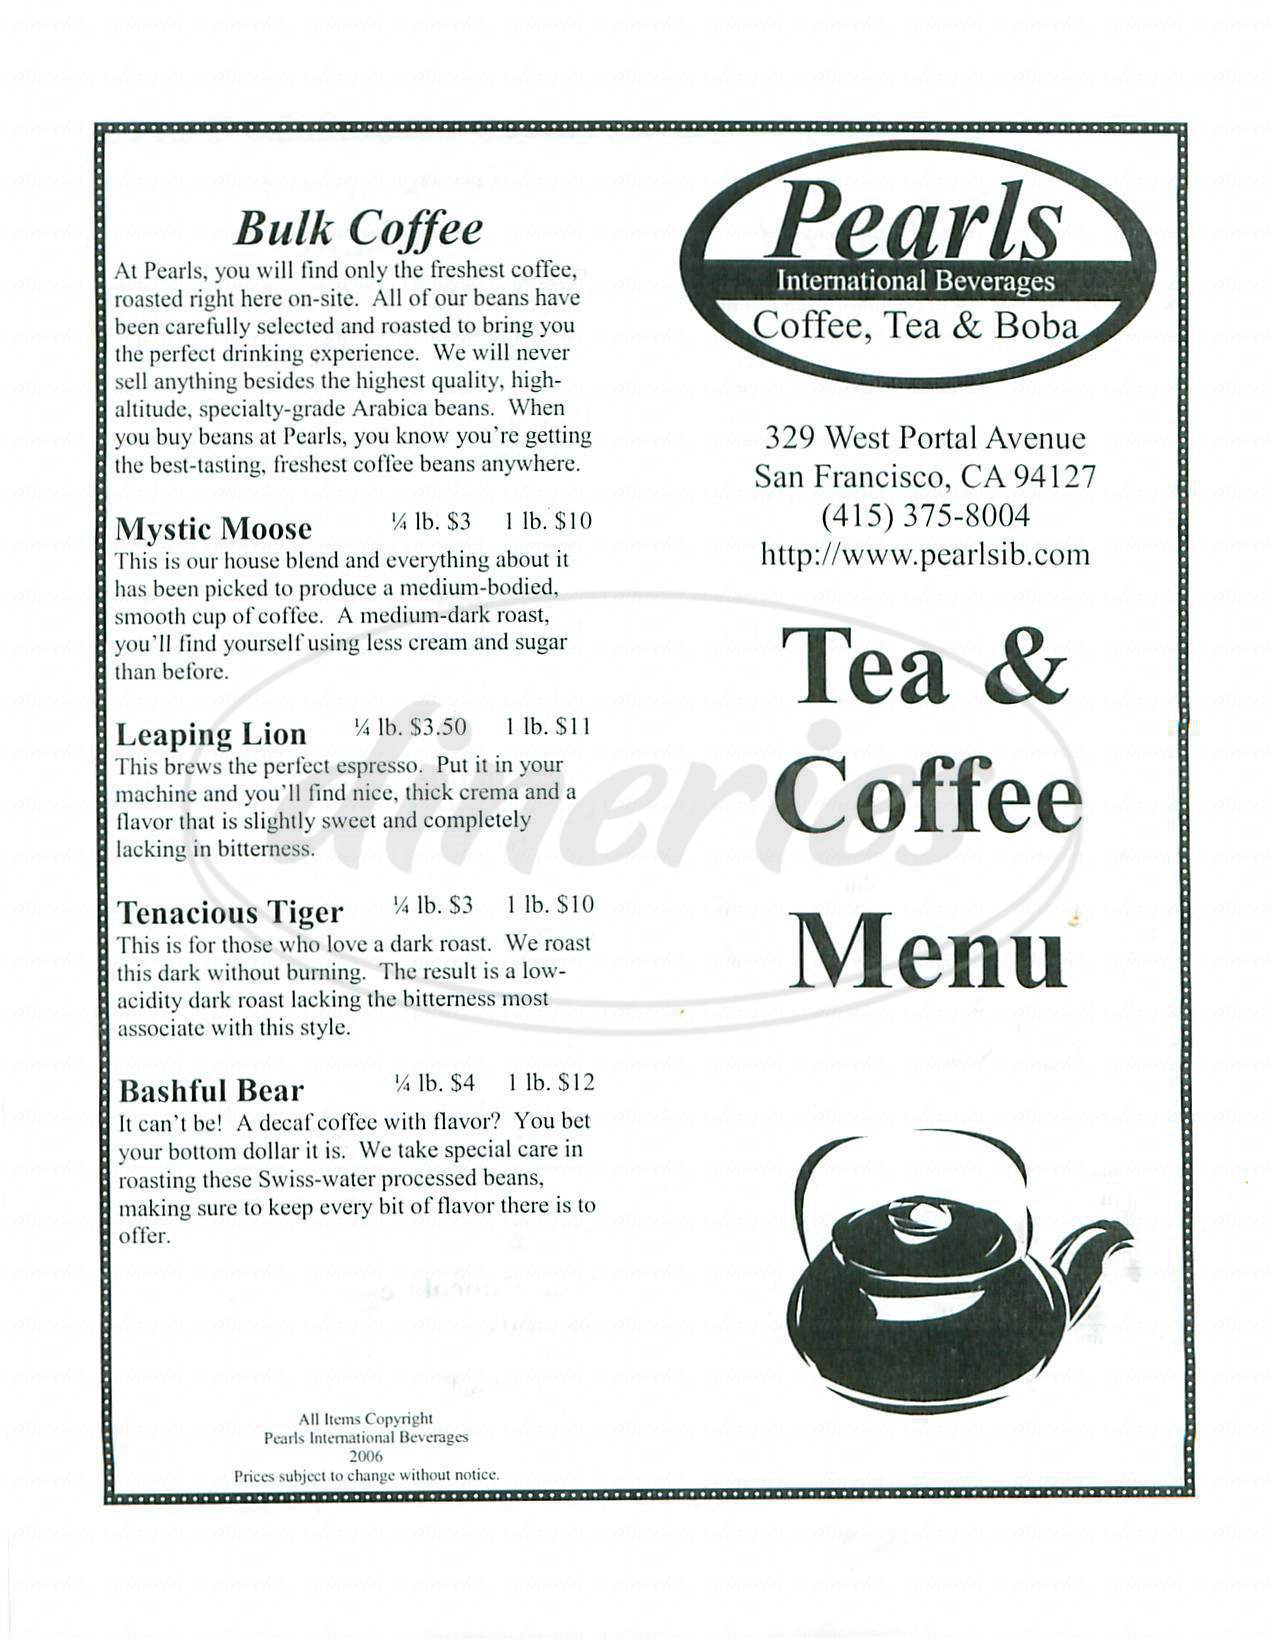 menu for Pearls International Beverages